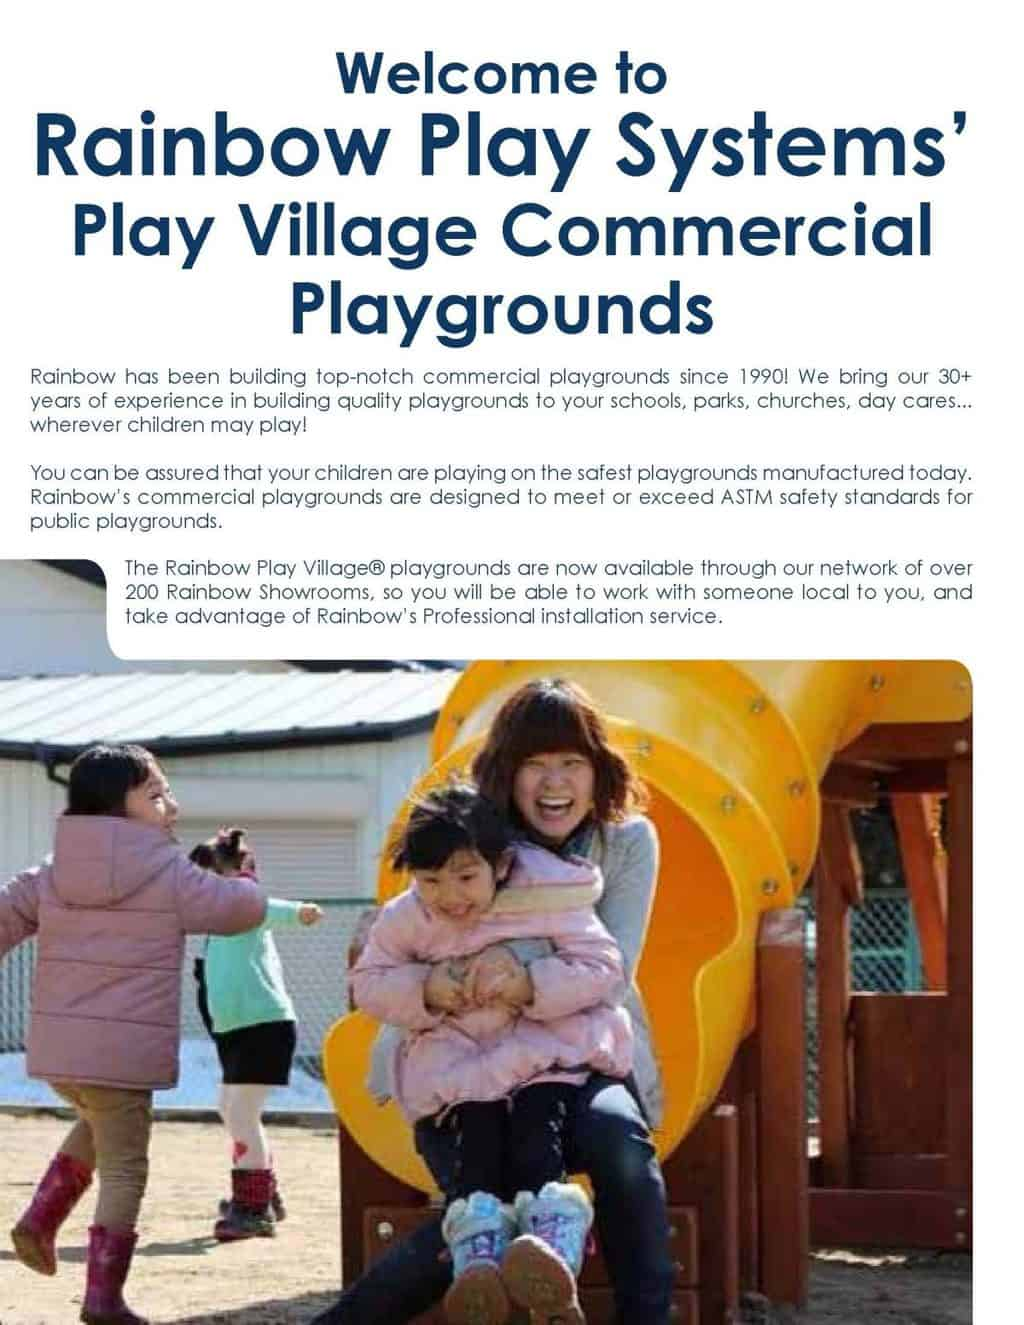 Rainbow Play Village Design 104 (15)